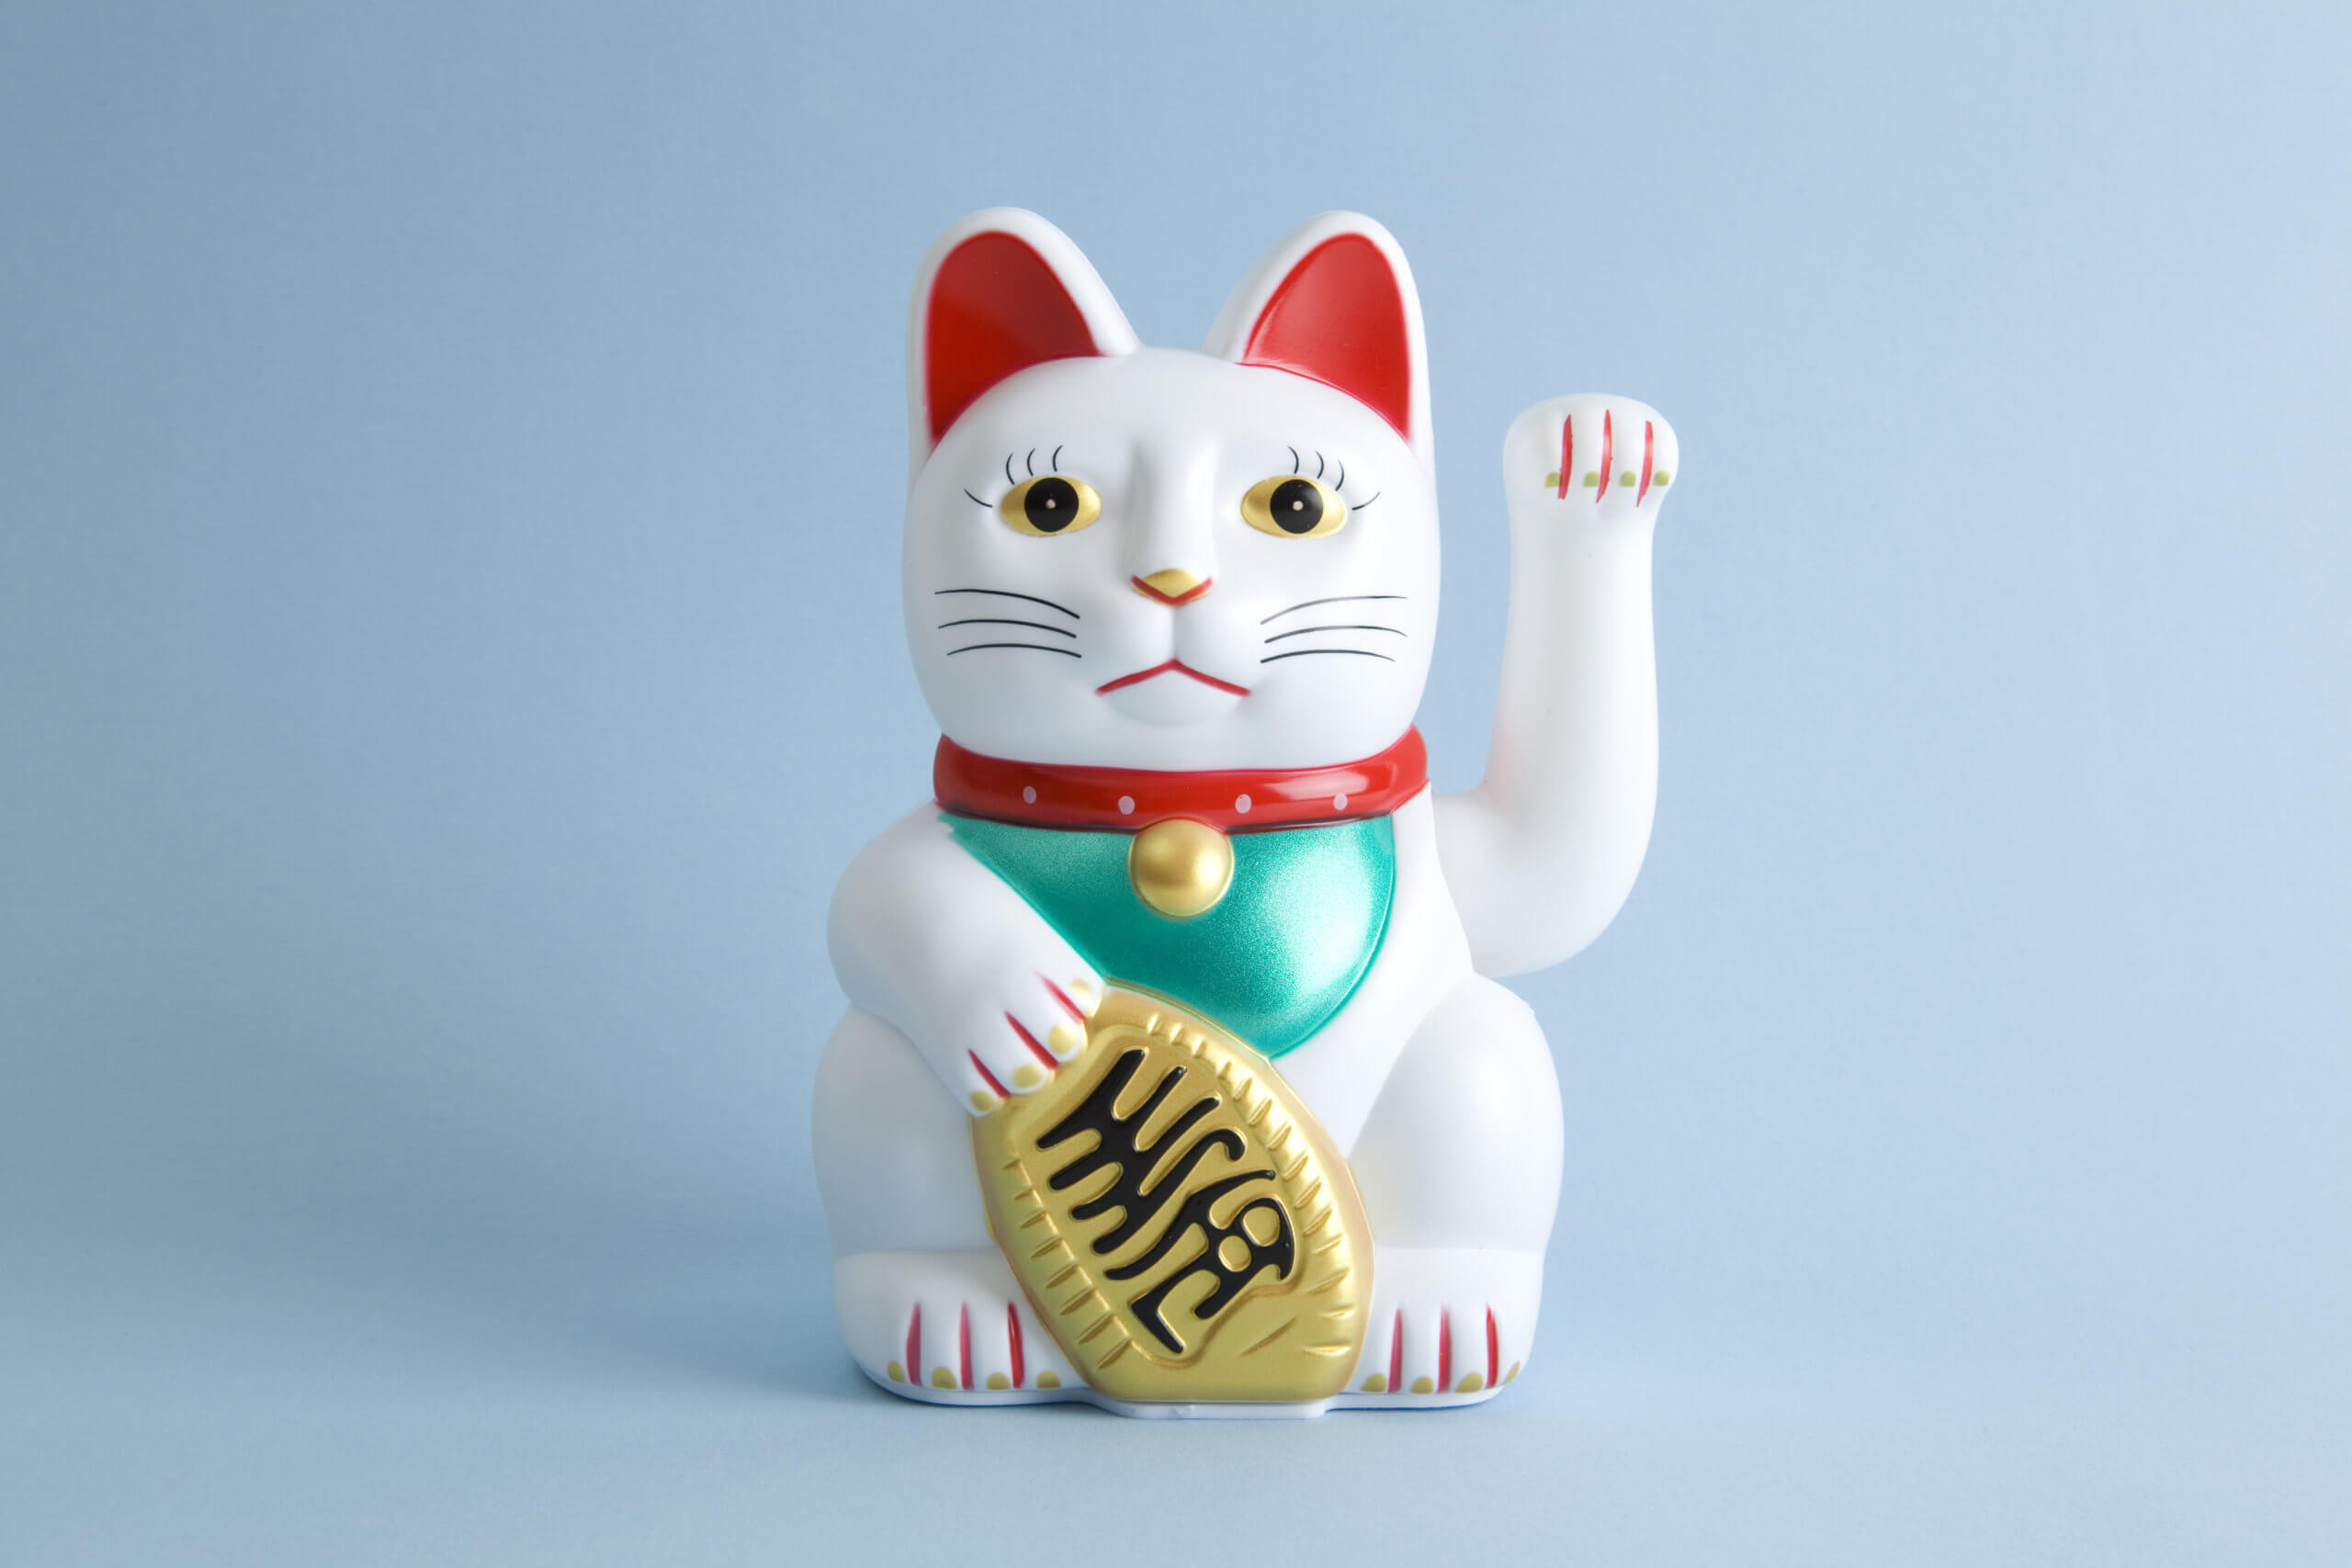 a Maneki-neko plastic cat, Symbolizing luck and wealth, on a pop and colorful background. Minimal color still life photography